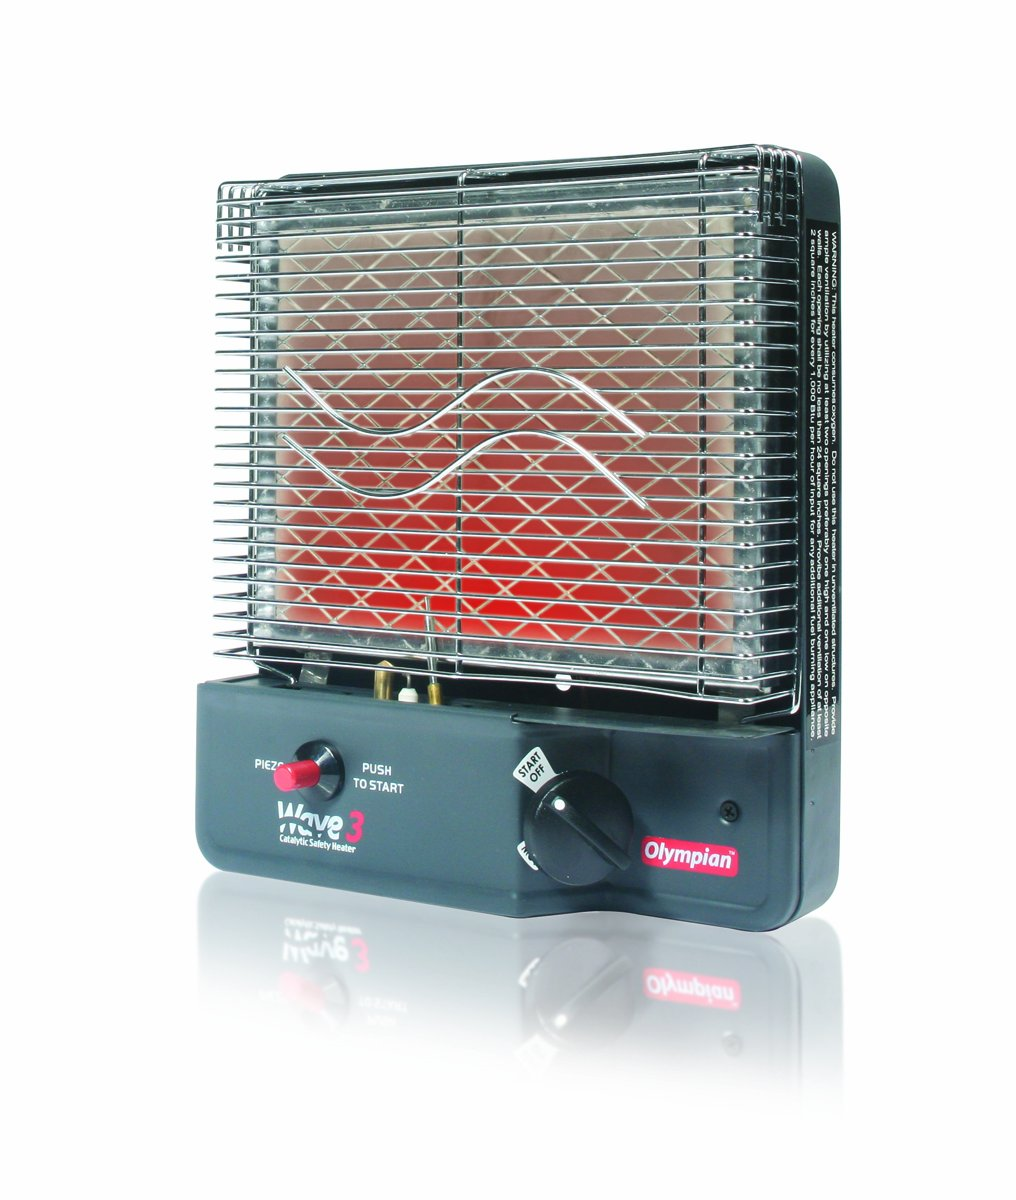 Camco 57331 Olympian Wave-3 Propane Heater Review